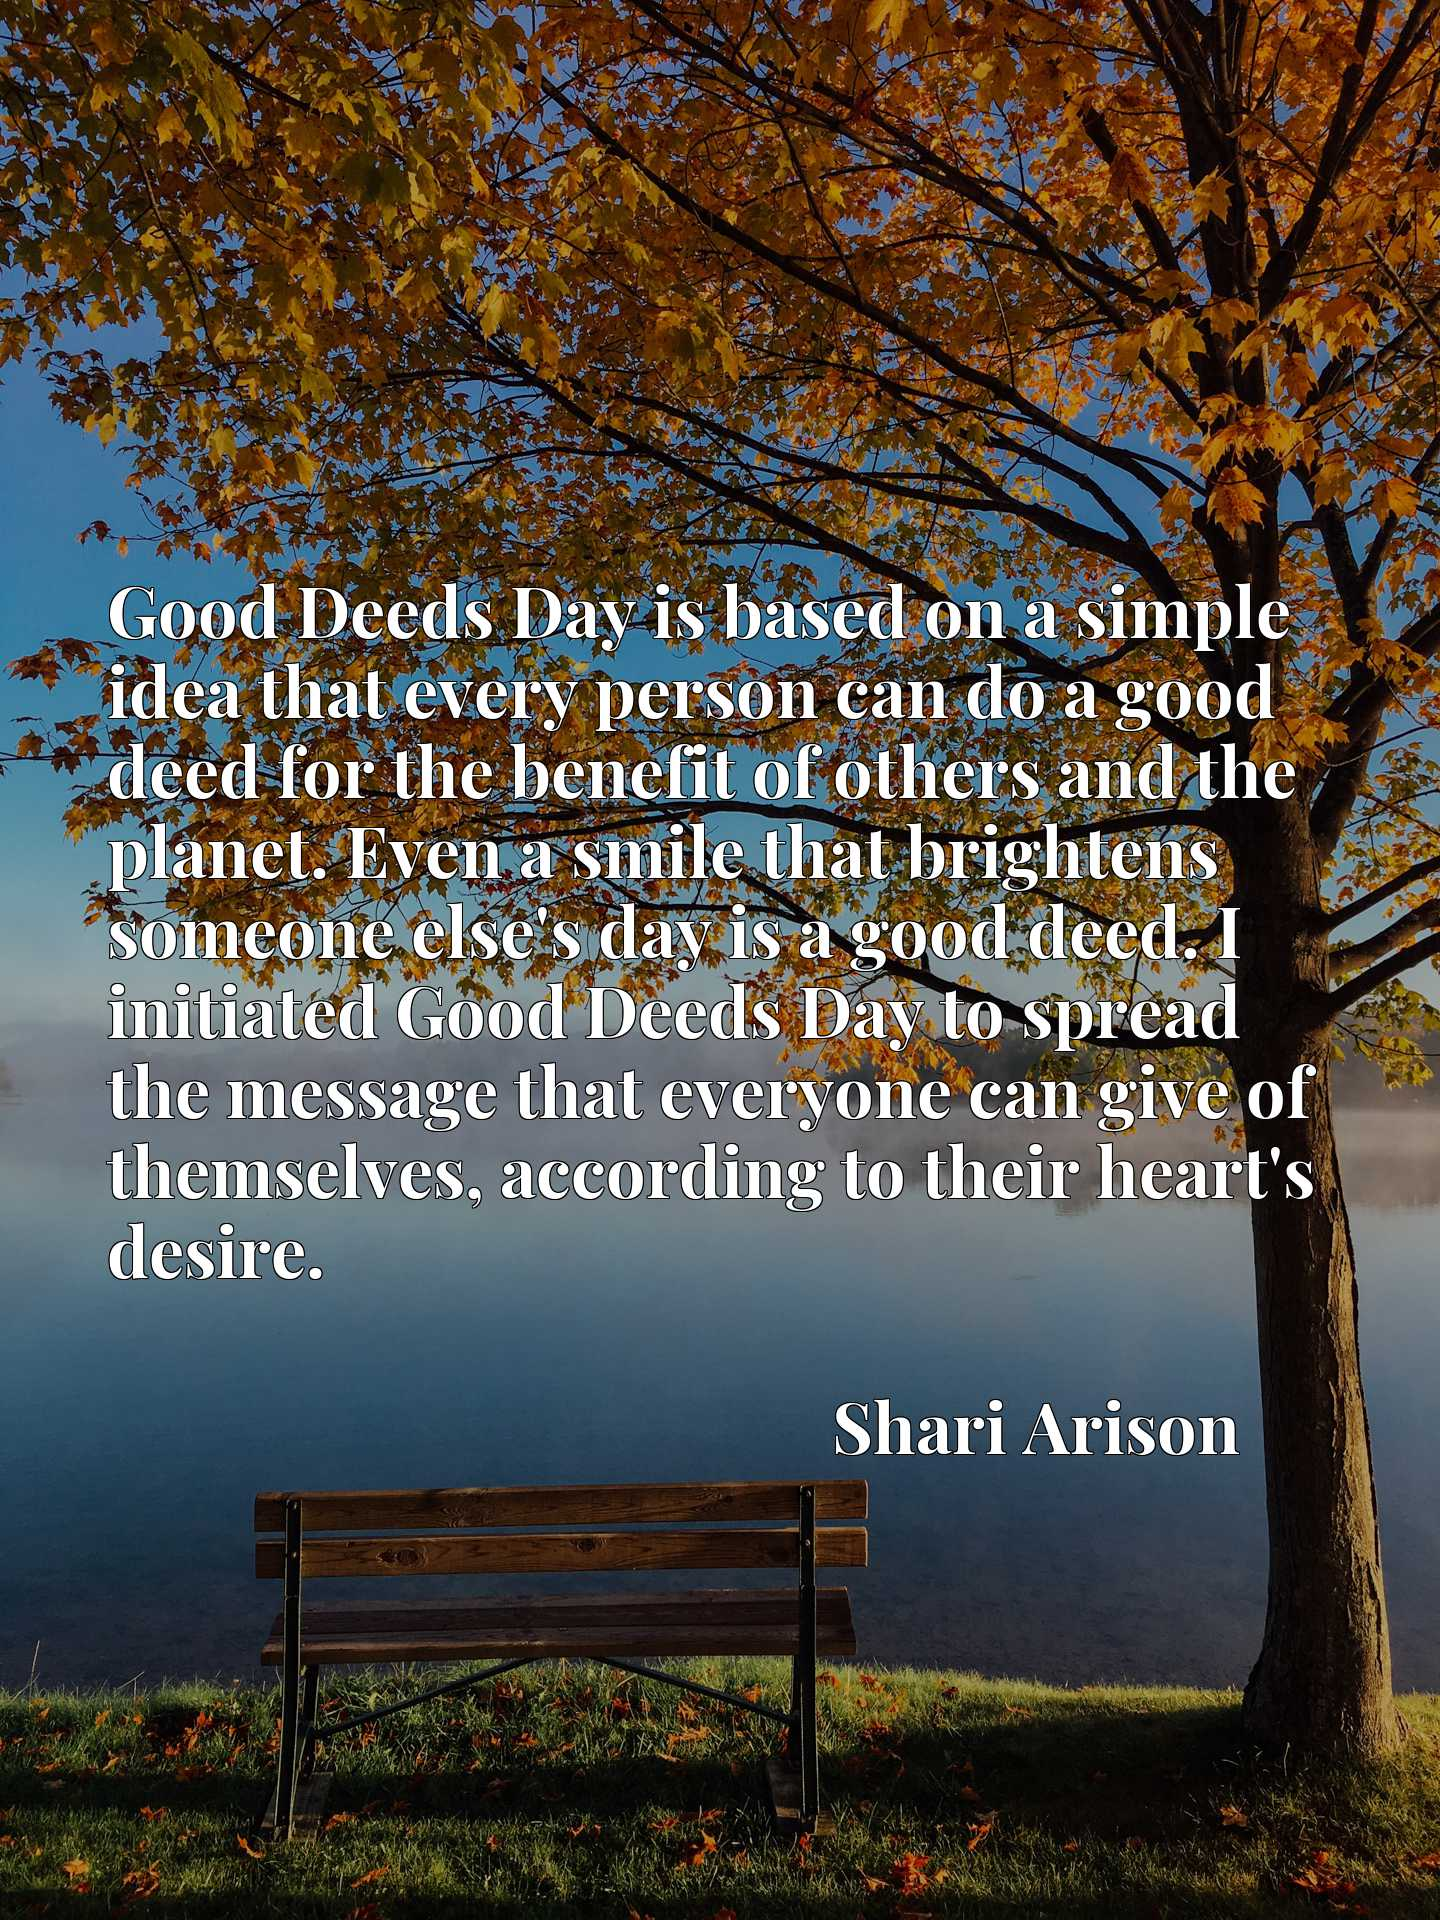 Good Deeds Day is based on a simple idea that every person can do a good deed for the benefit of others and the planet. Even a smile that brightens someone else's day is a good deed. I initiated Good Deeds Day to spread the message that everyone can give of themselves, according to their heart's desire.